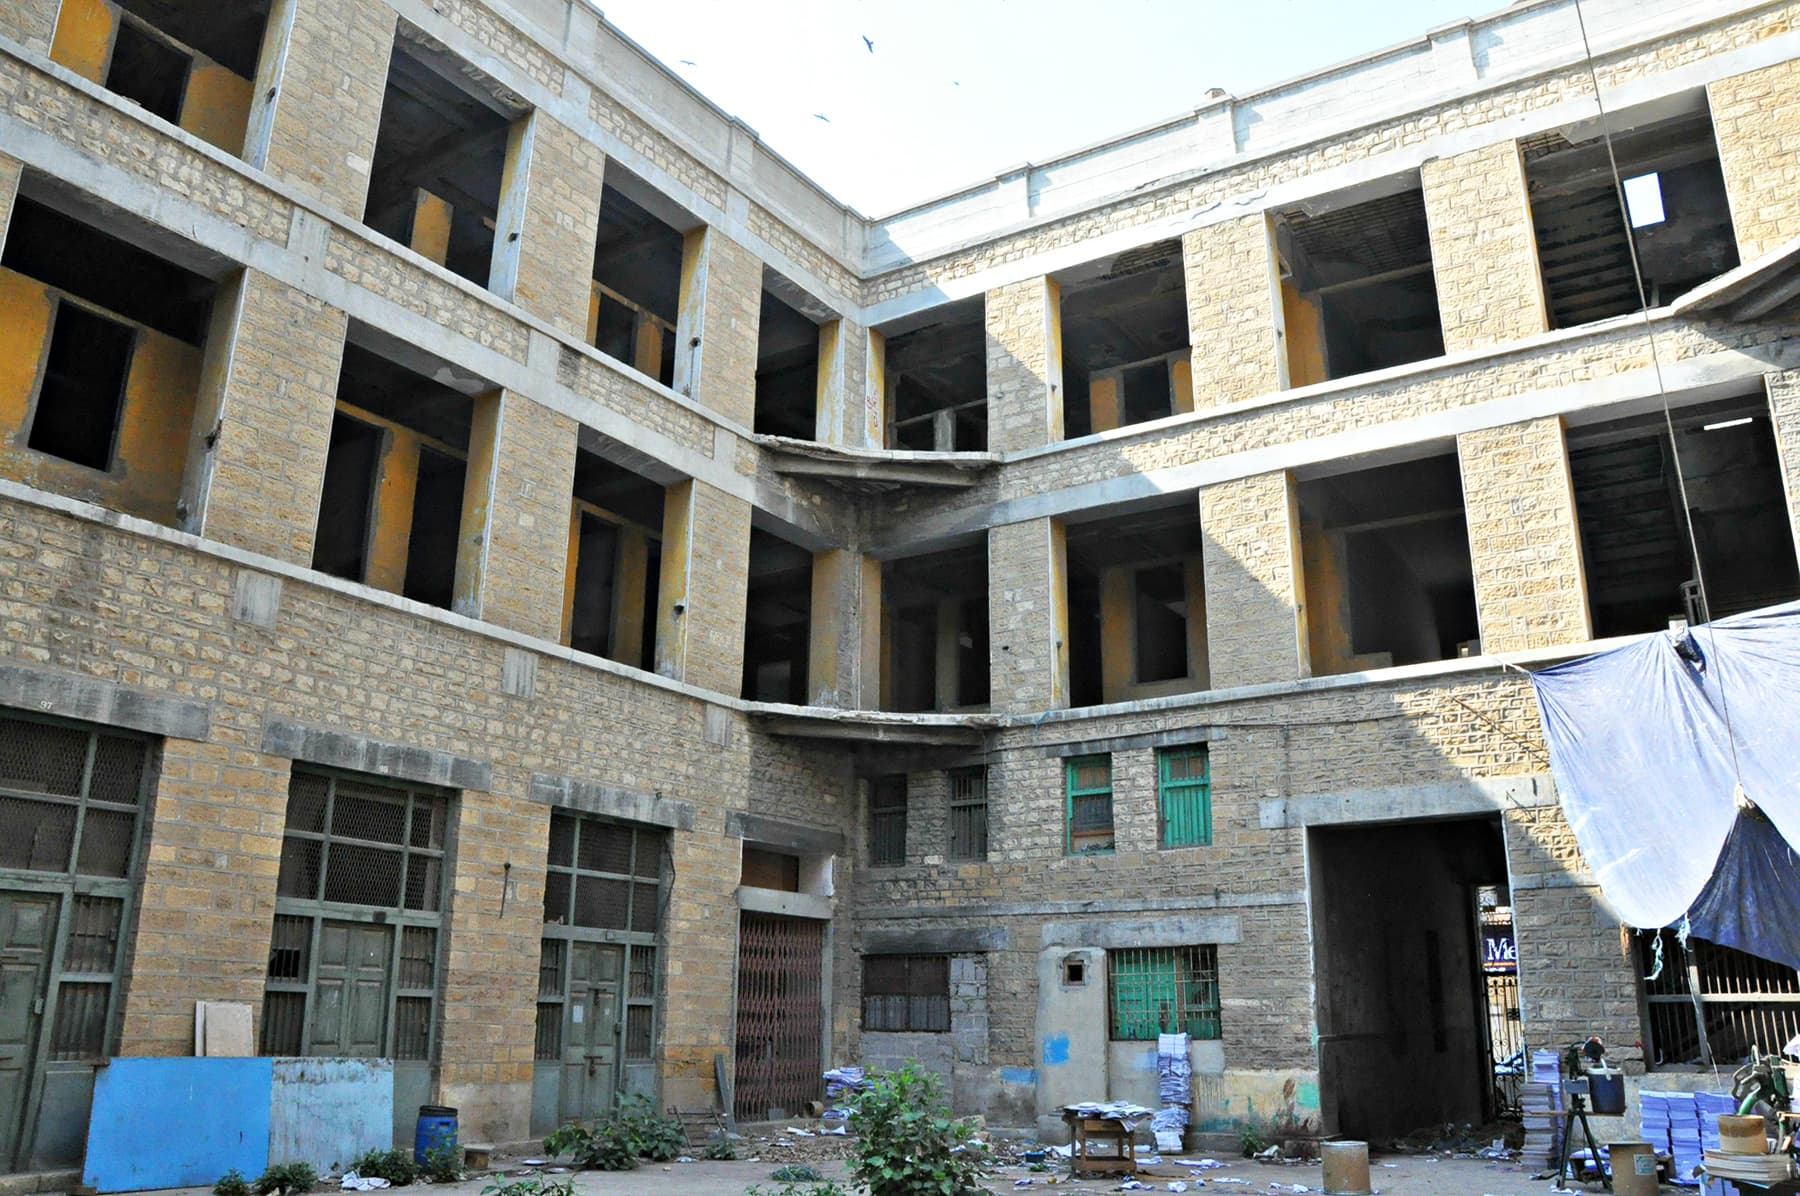 The hostel, which played such an important role in the lives of yesteryear generations, lies abandoned today.